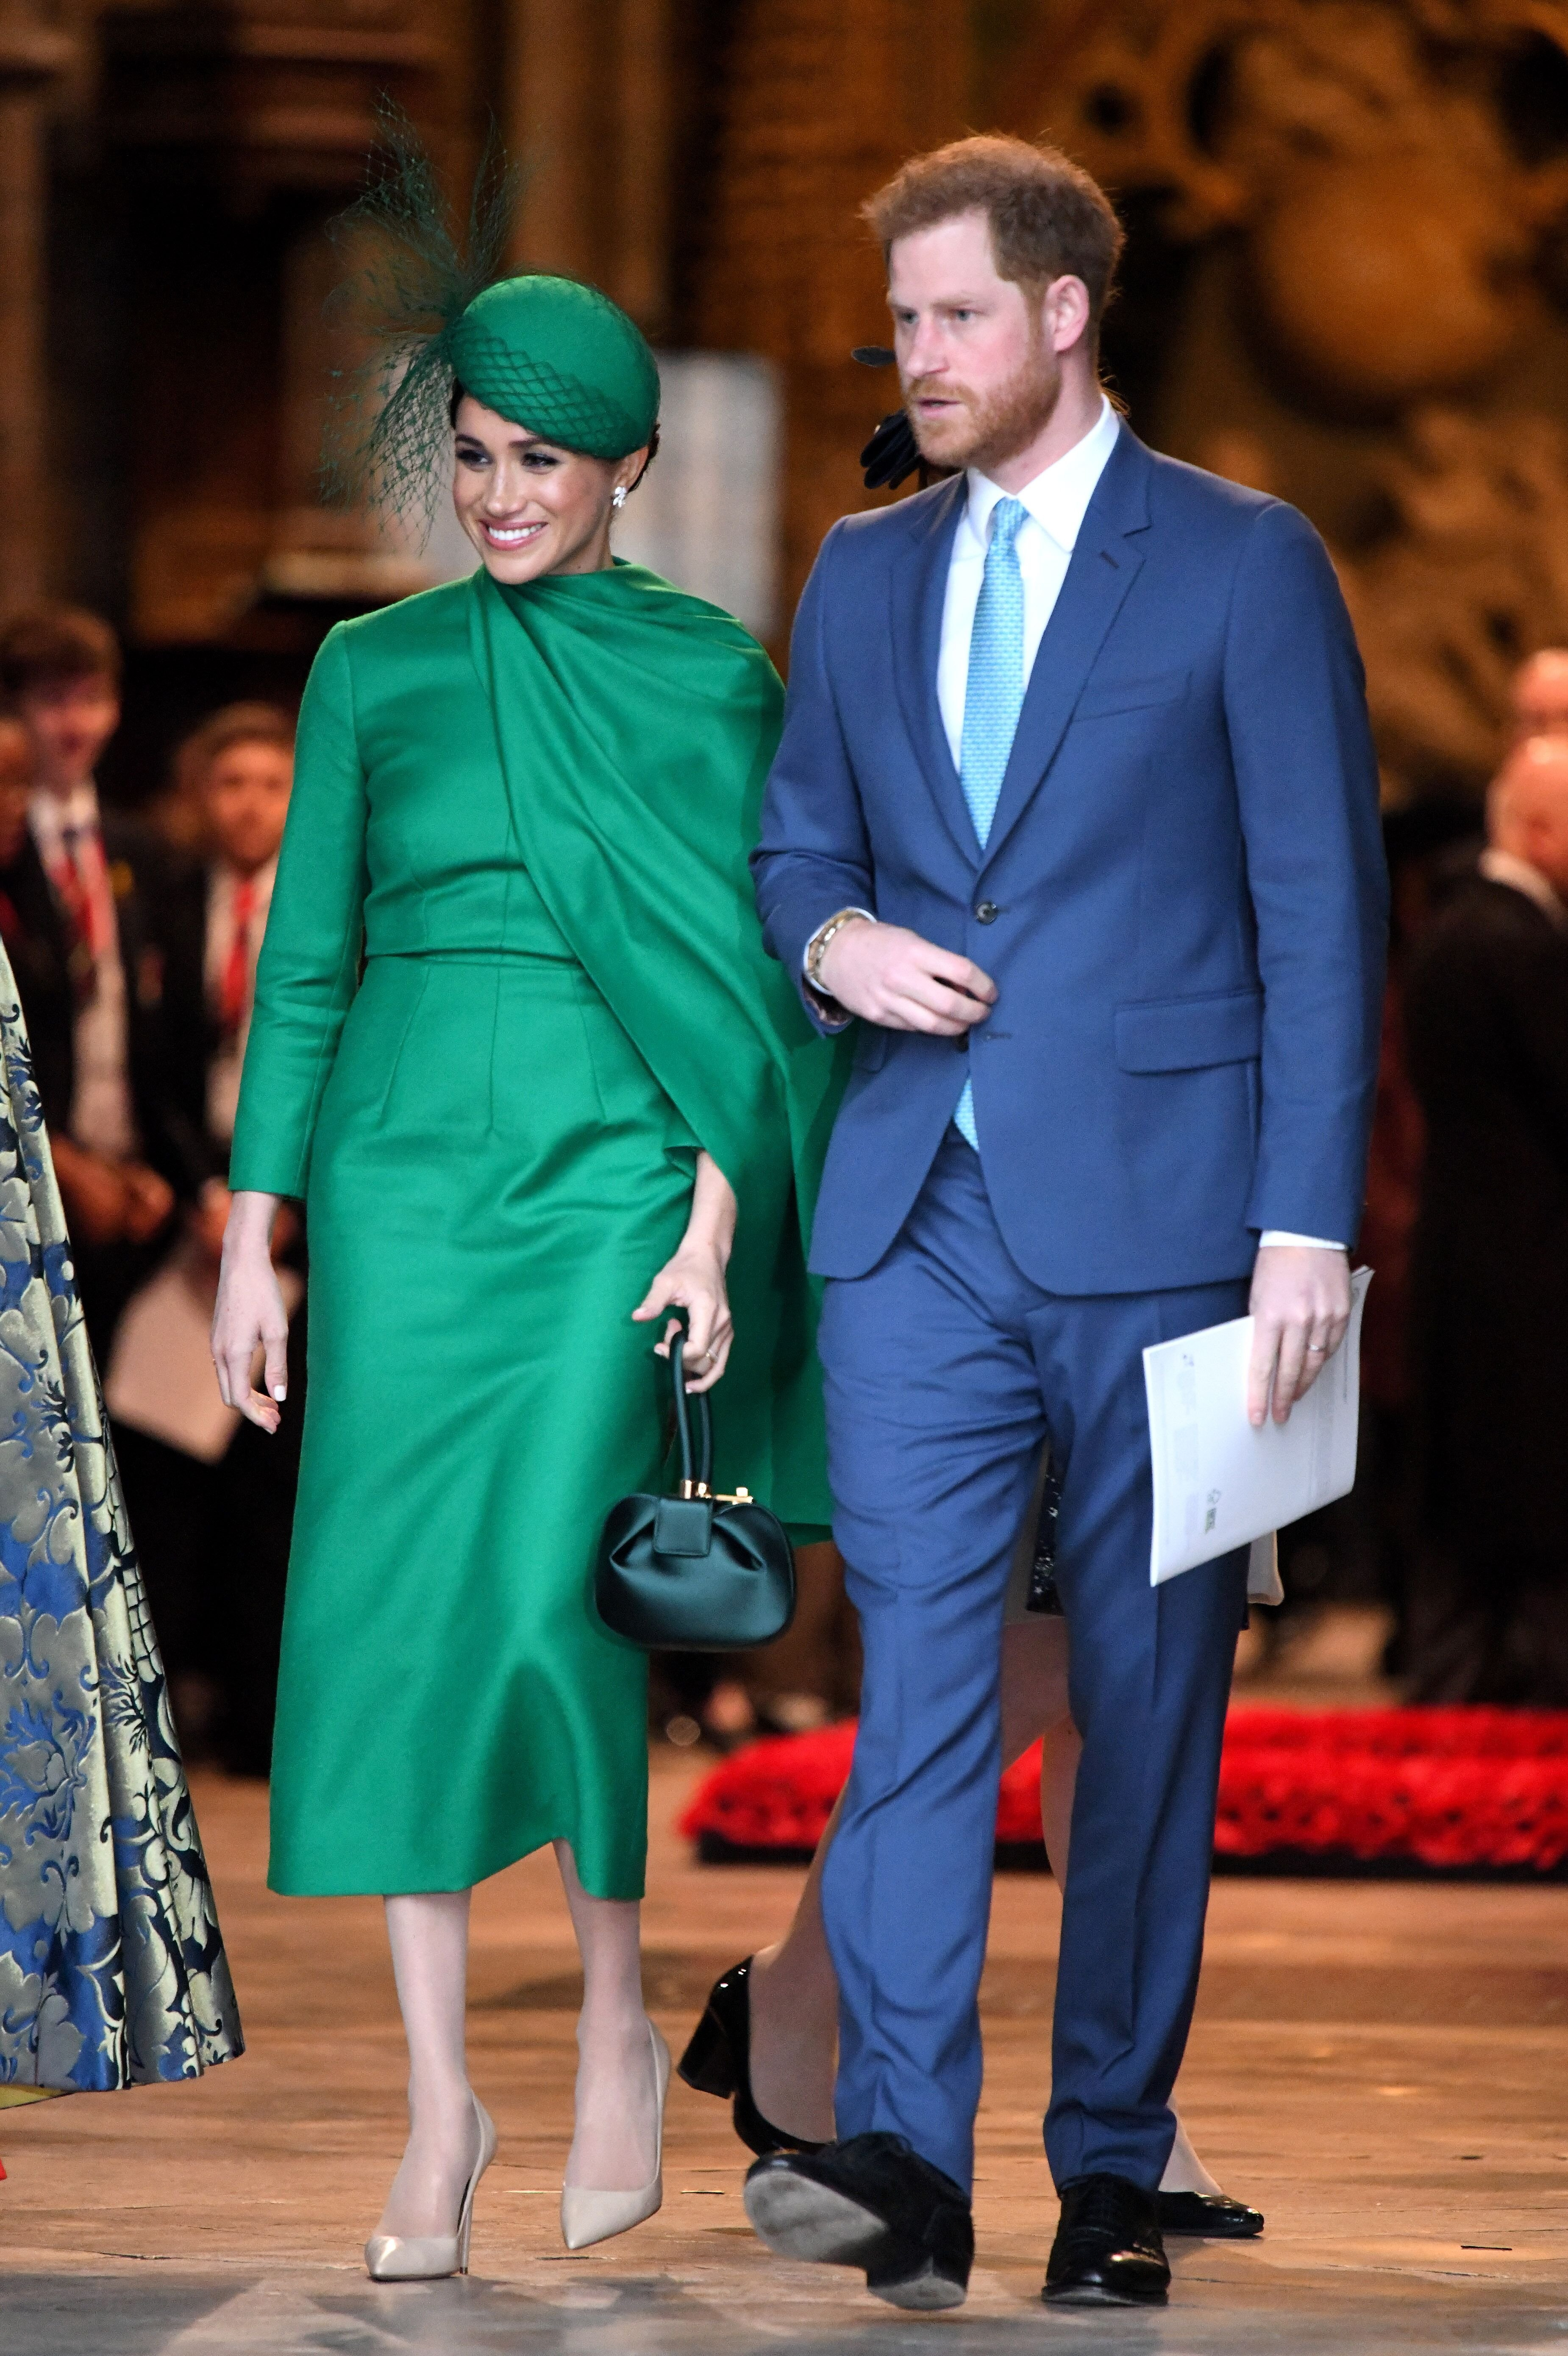 Duchess Meghan and Prince Harry depart after attending the Commonwealth Day Service at Westminster Abbey on March 09, 2020, in London, England | Photo: Getty Images